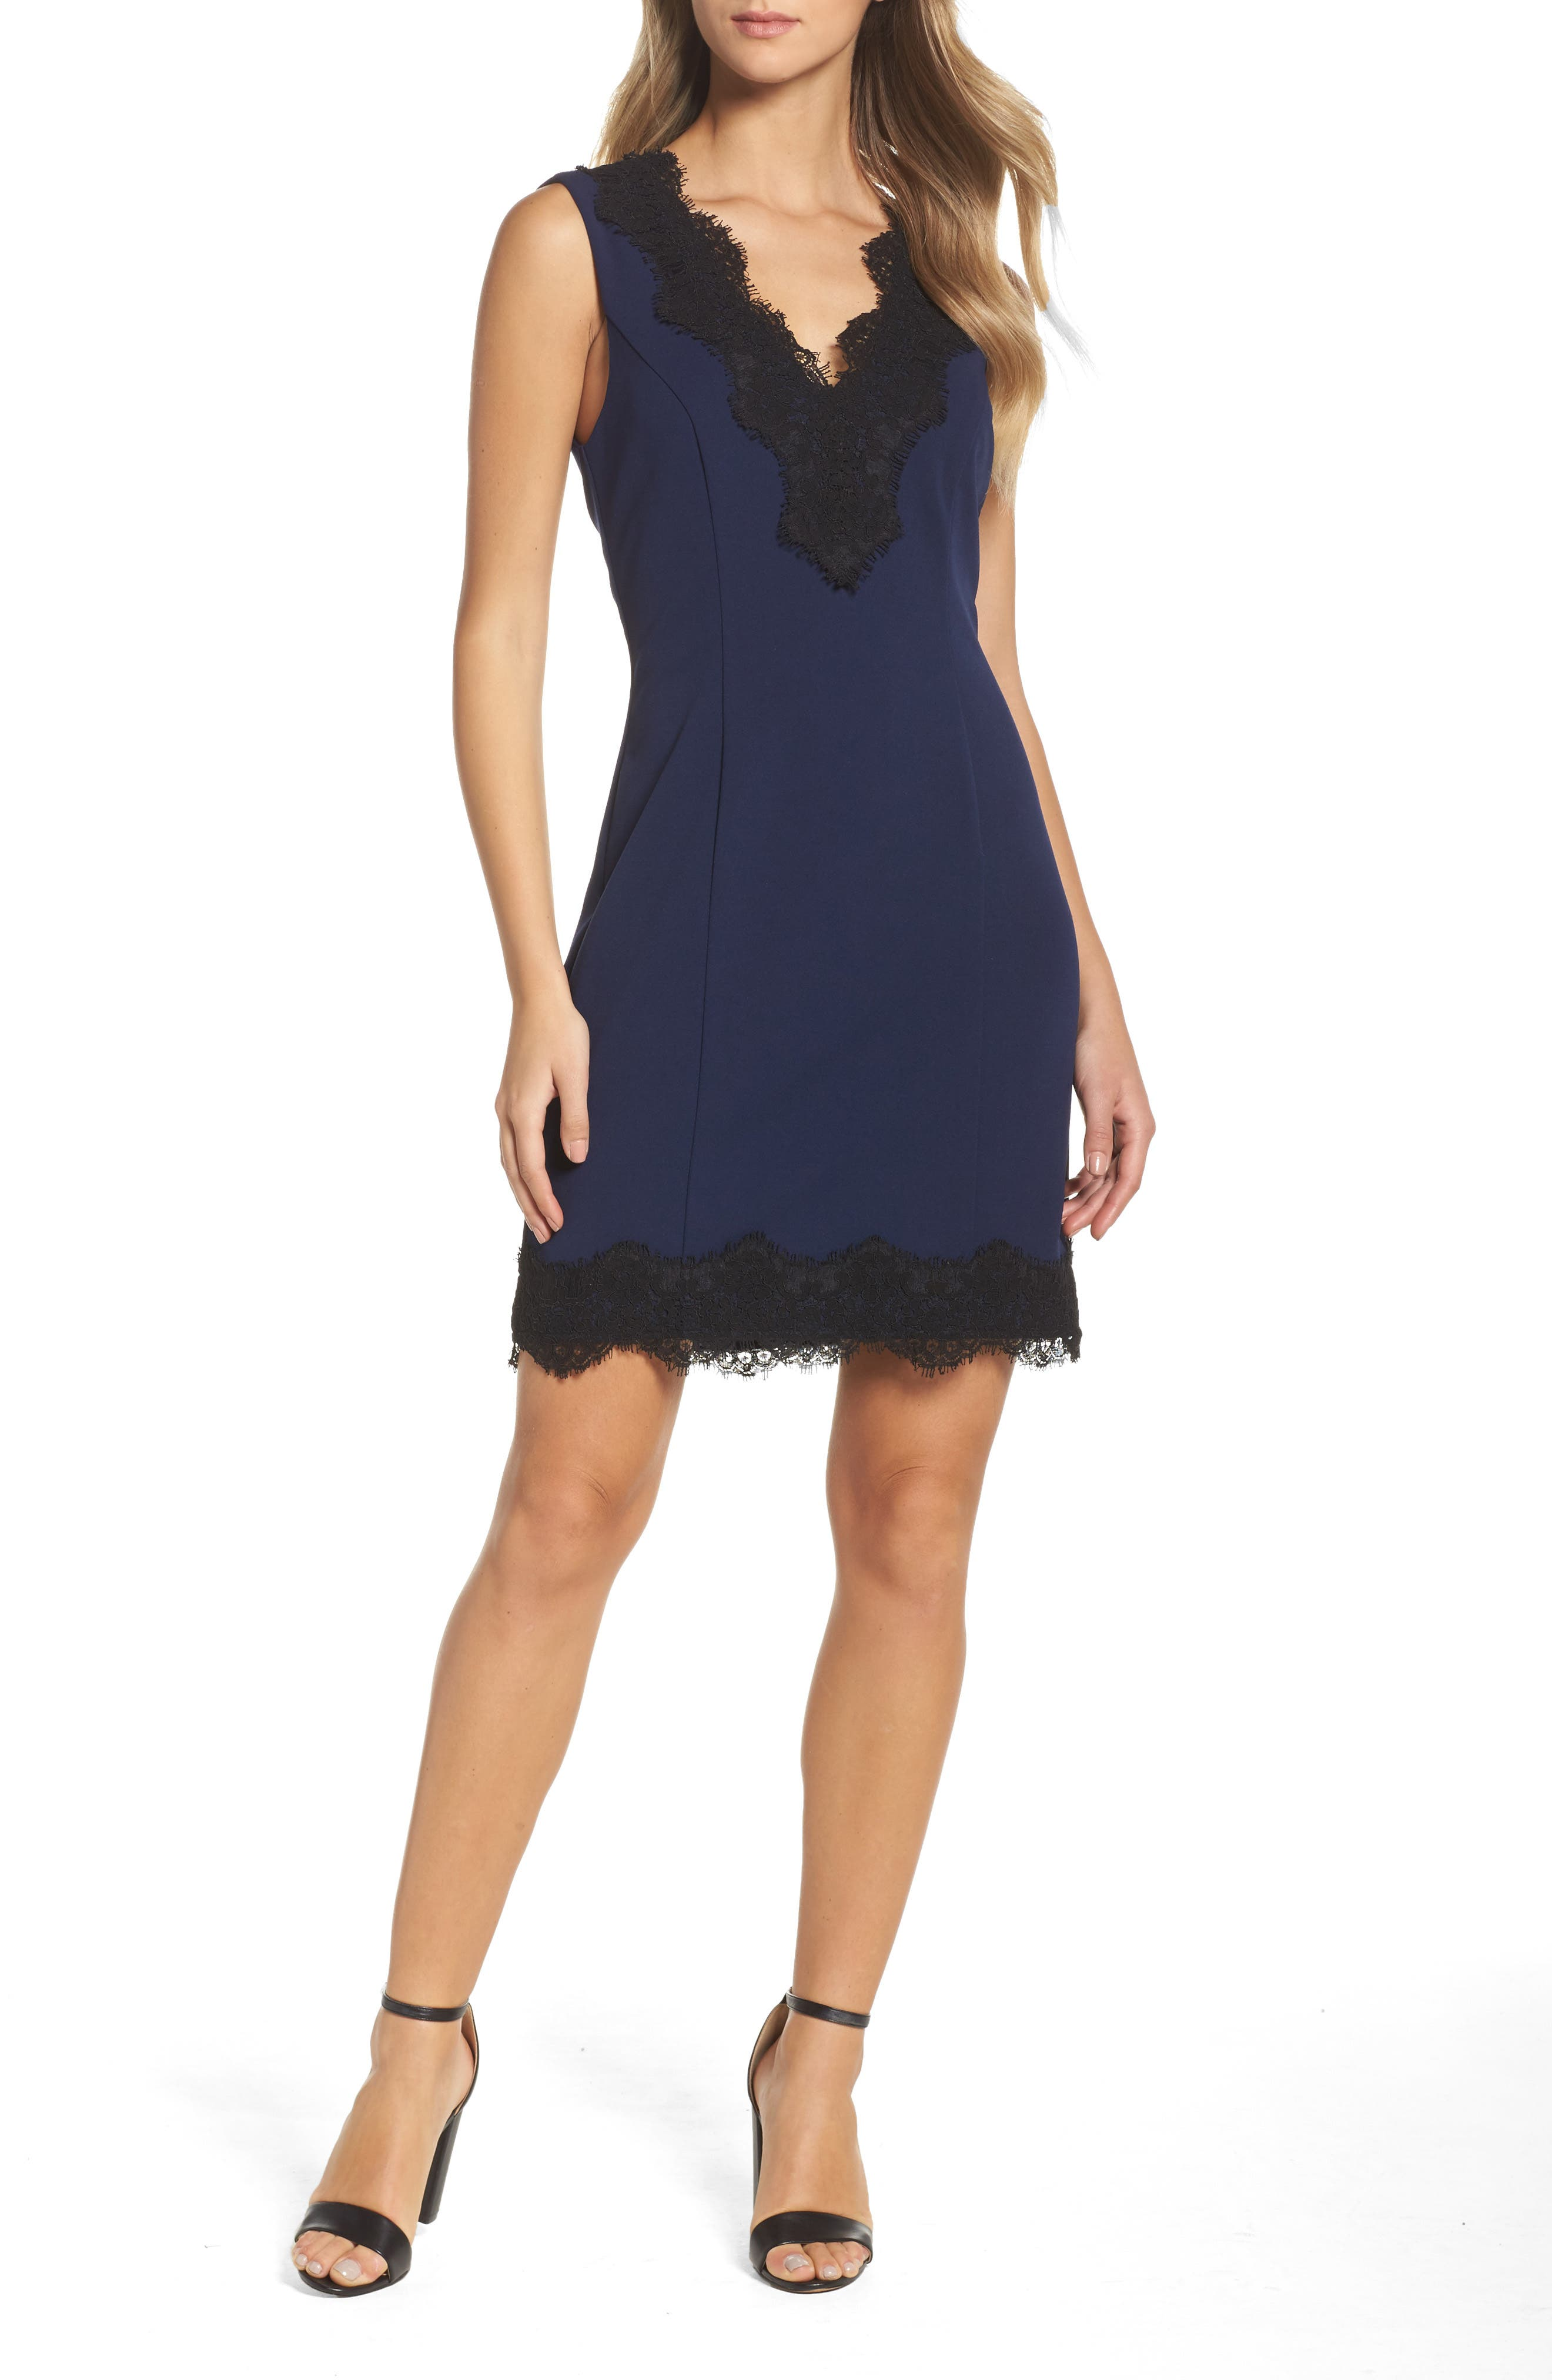 Alternate Image 1 Selected - Charles Henry Lace Trim Sheath Dress